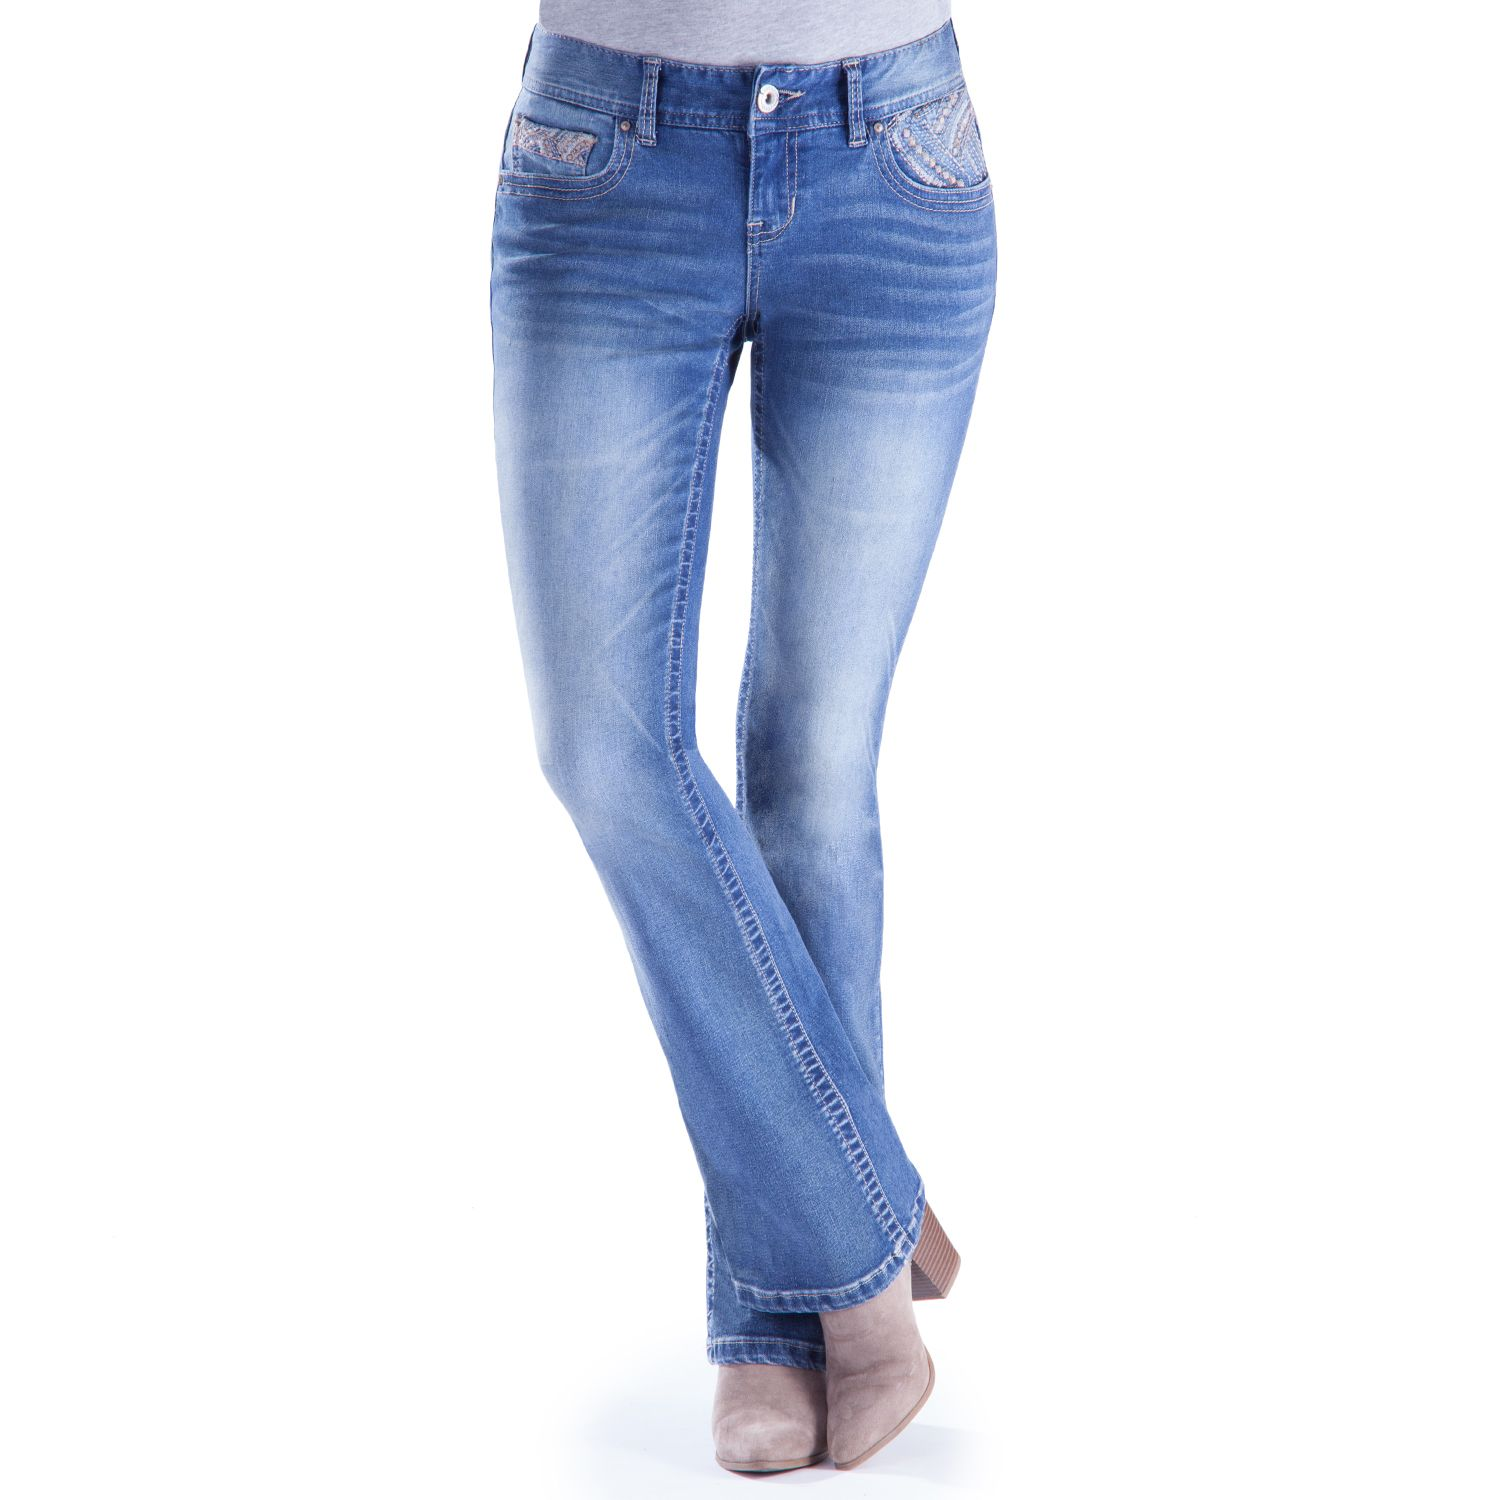 Slim bootcut jeans for juniors